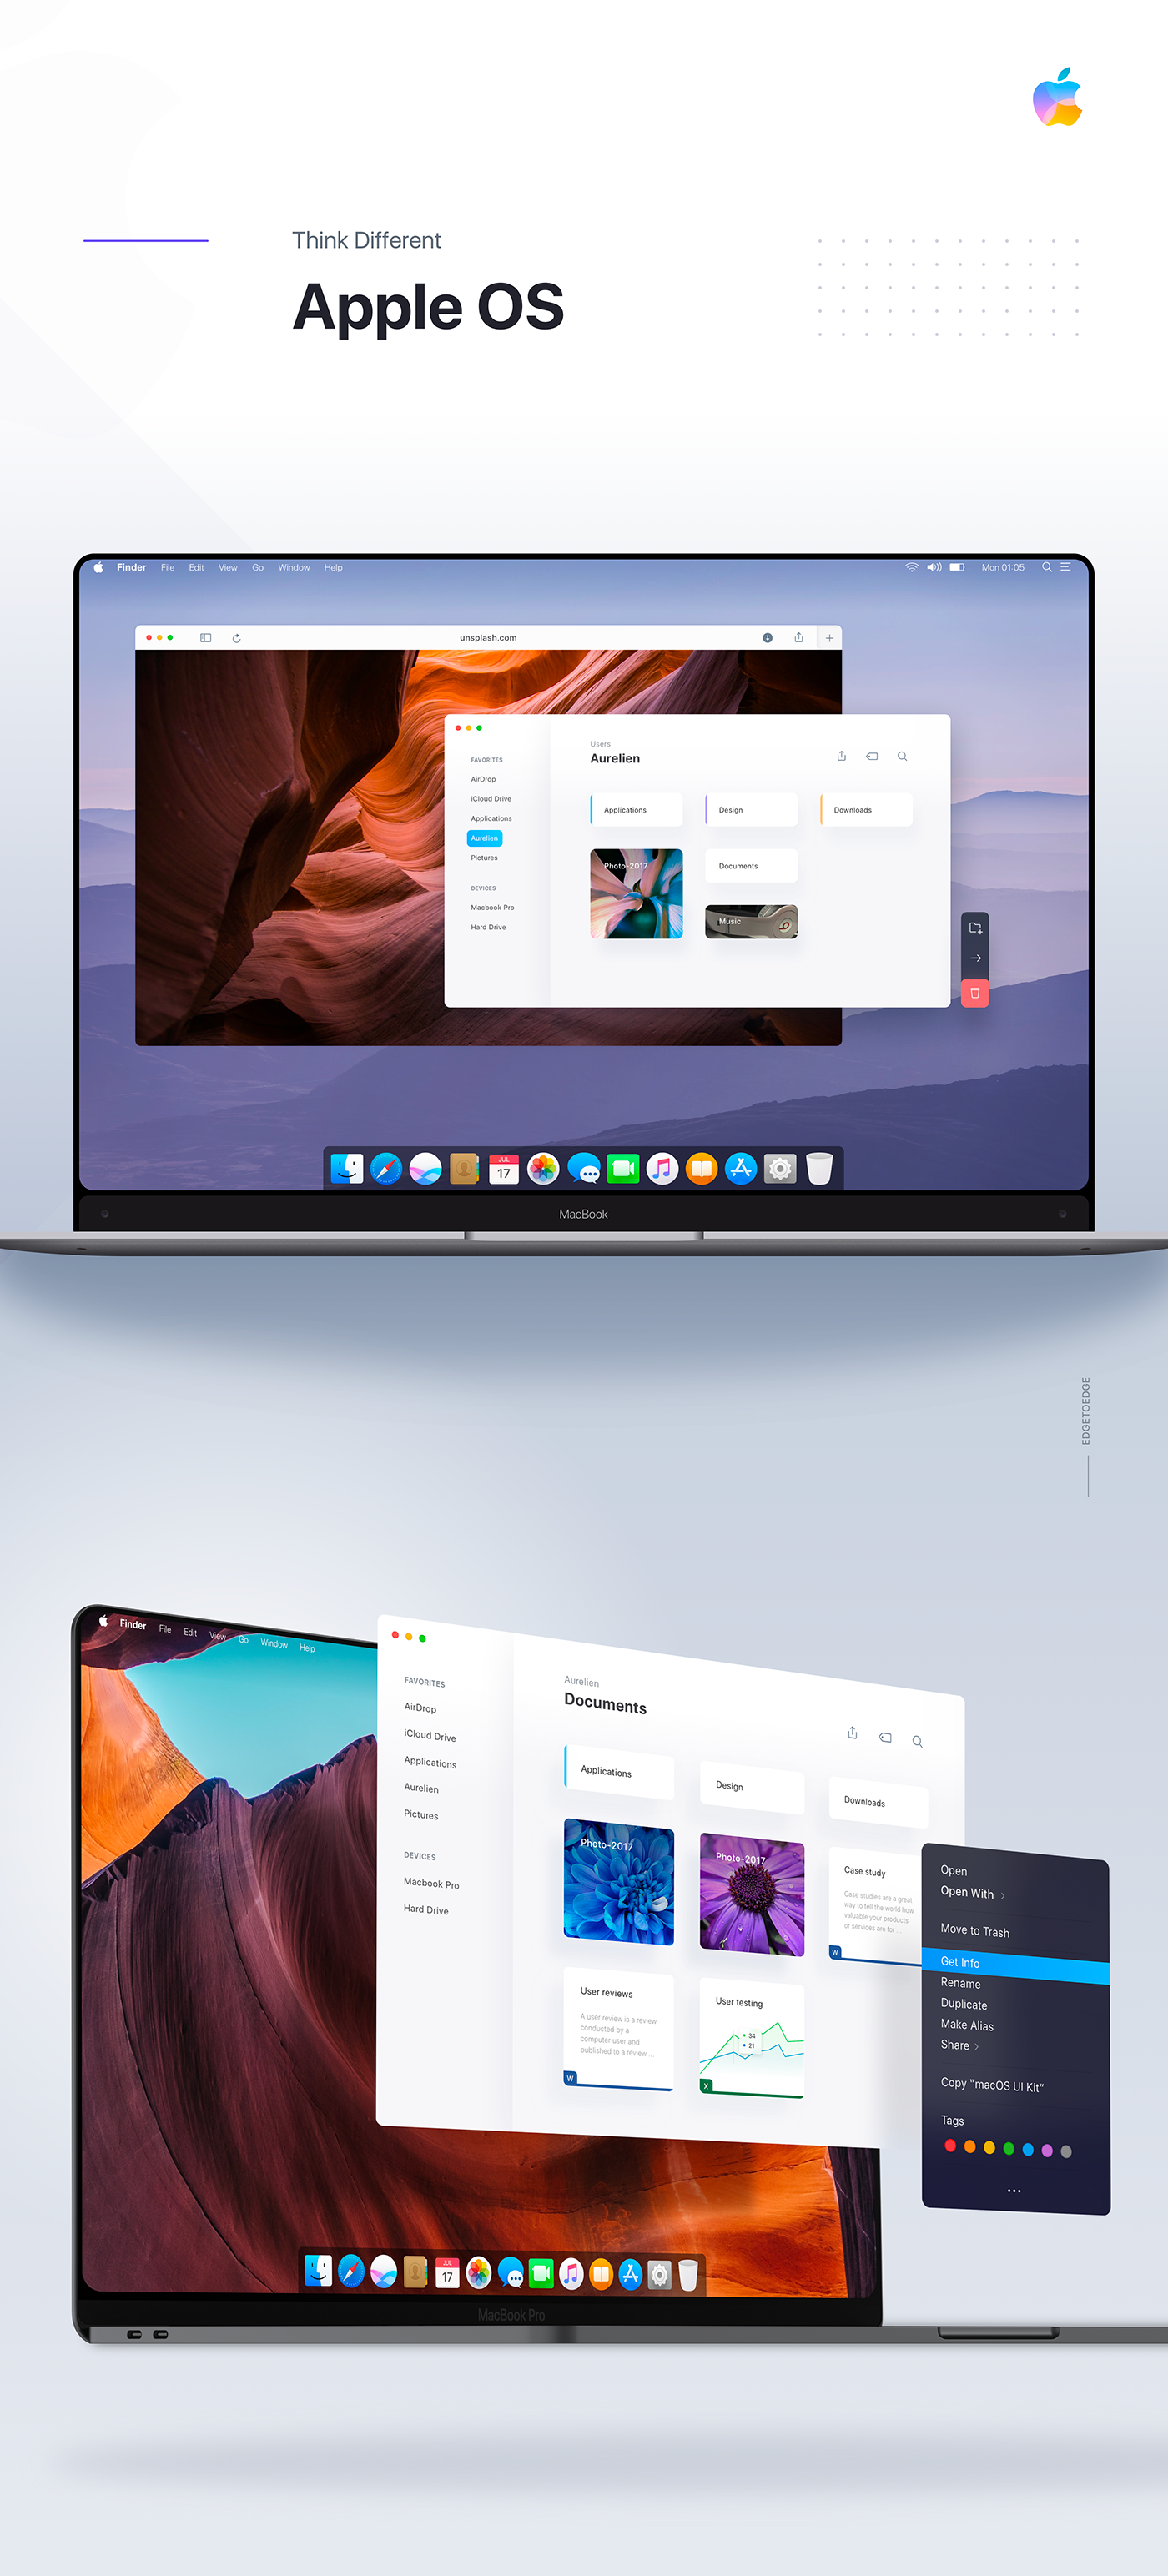 Best Mac Apps 2020 Apple OS / Mac OS 2020 redesign   Edge to edge Macbook on Behance